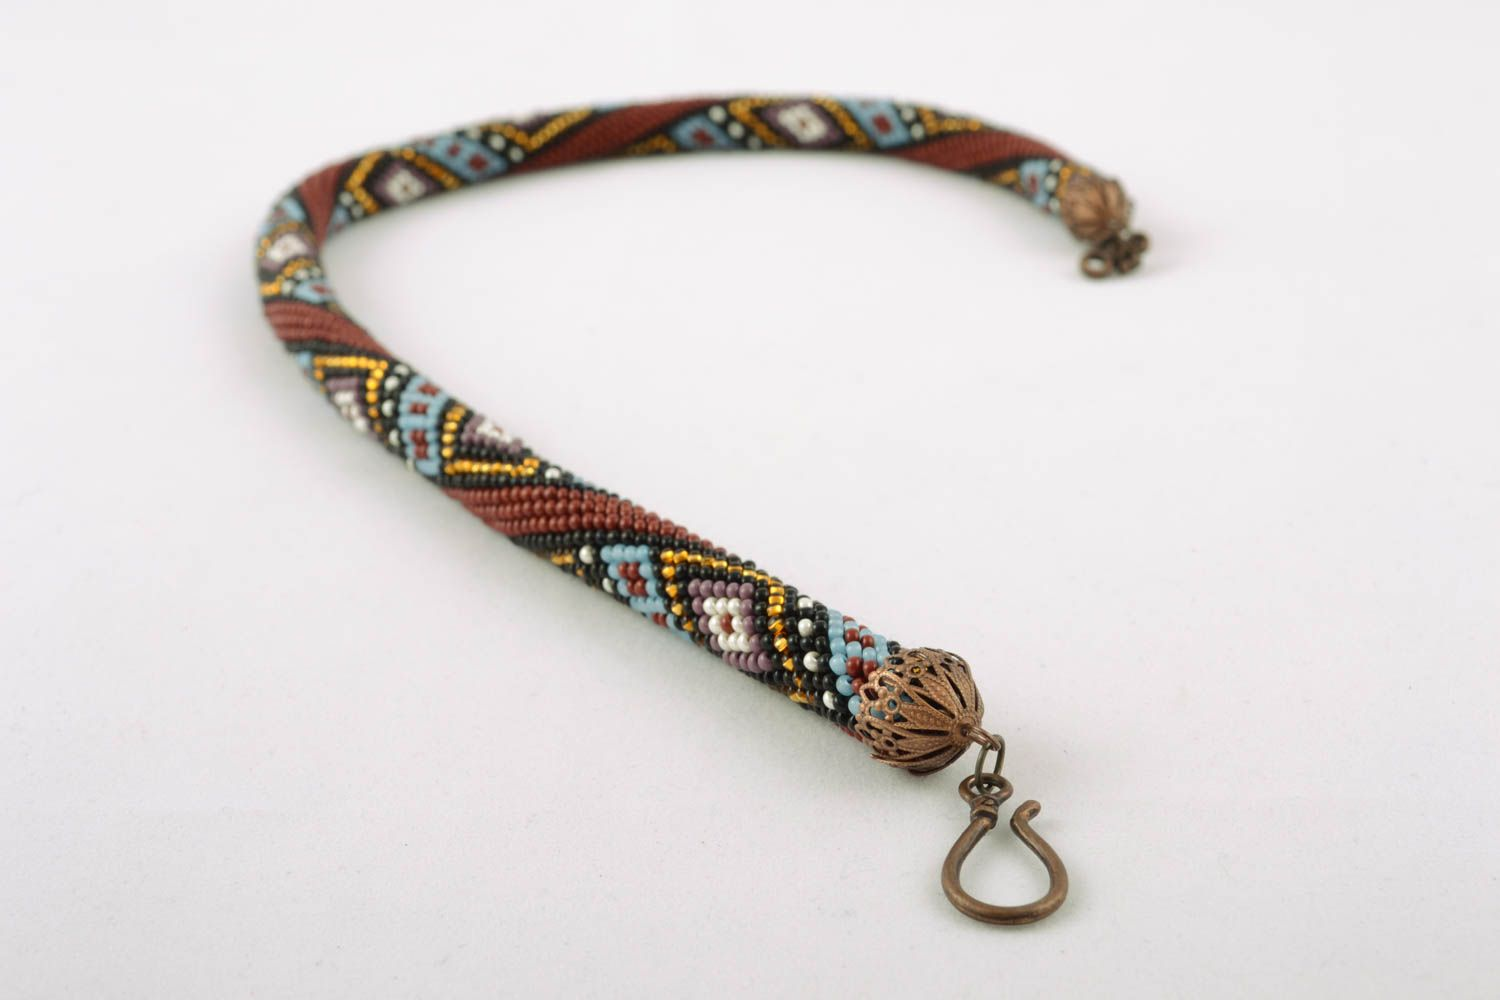 Beaded cord necklace with ornament photo 3